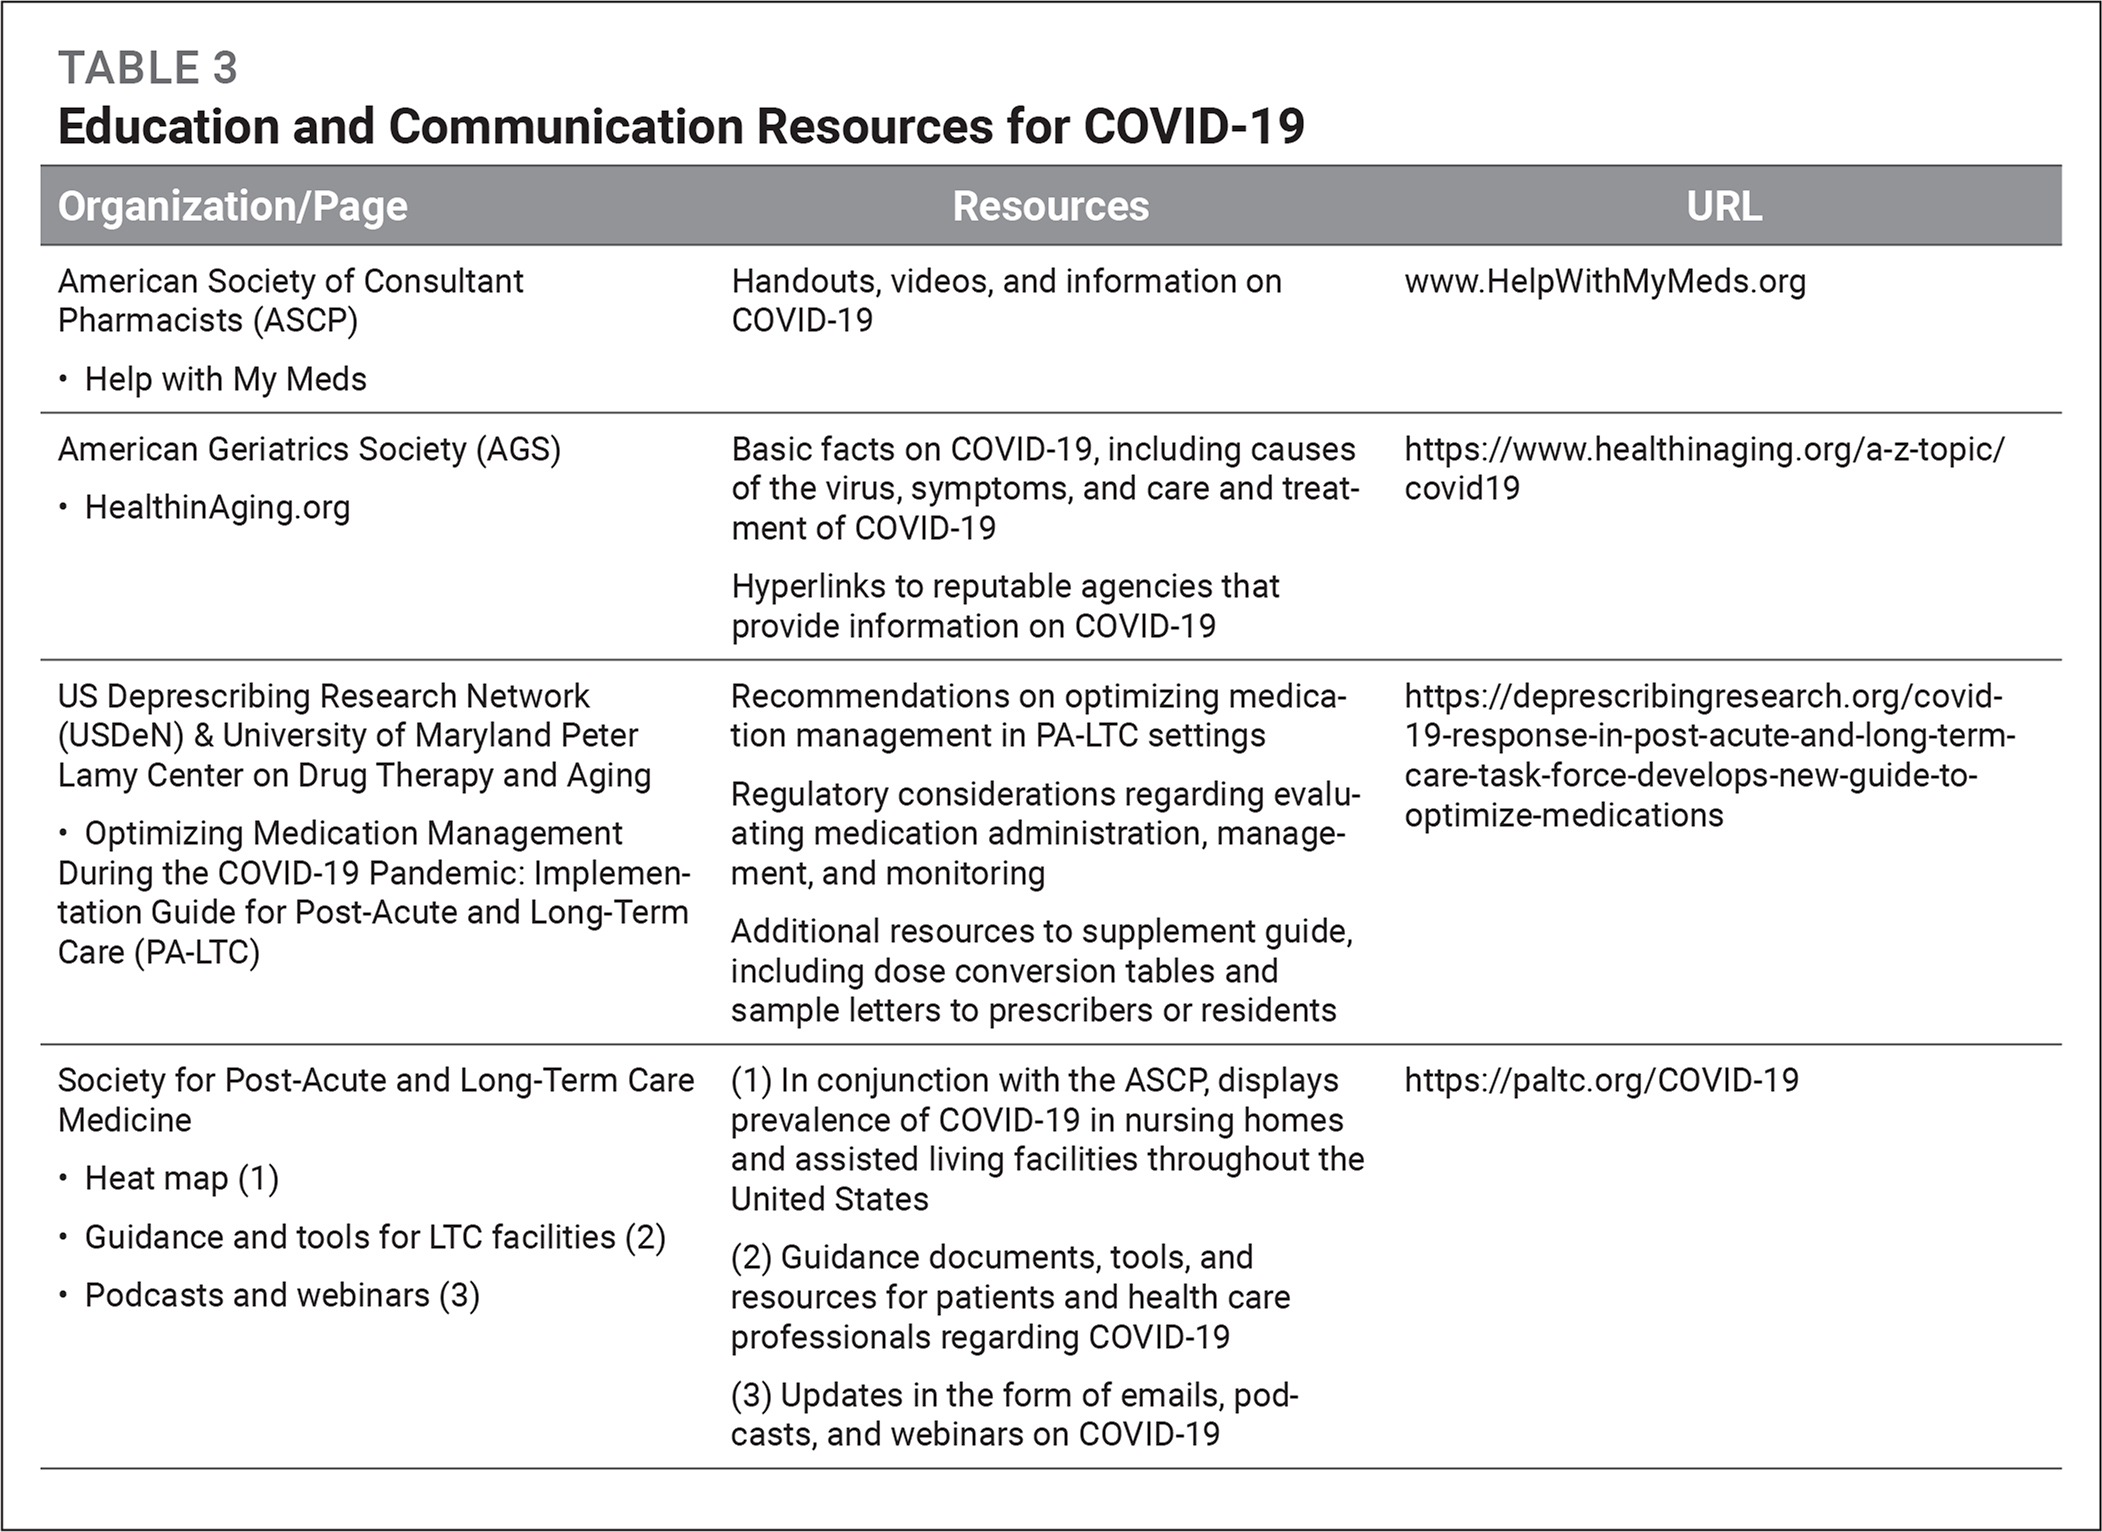 Education and Communication Resources for COVID-19